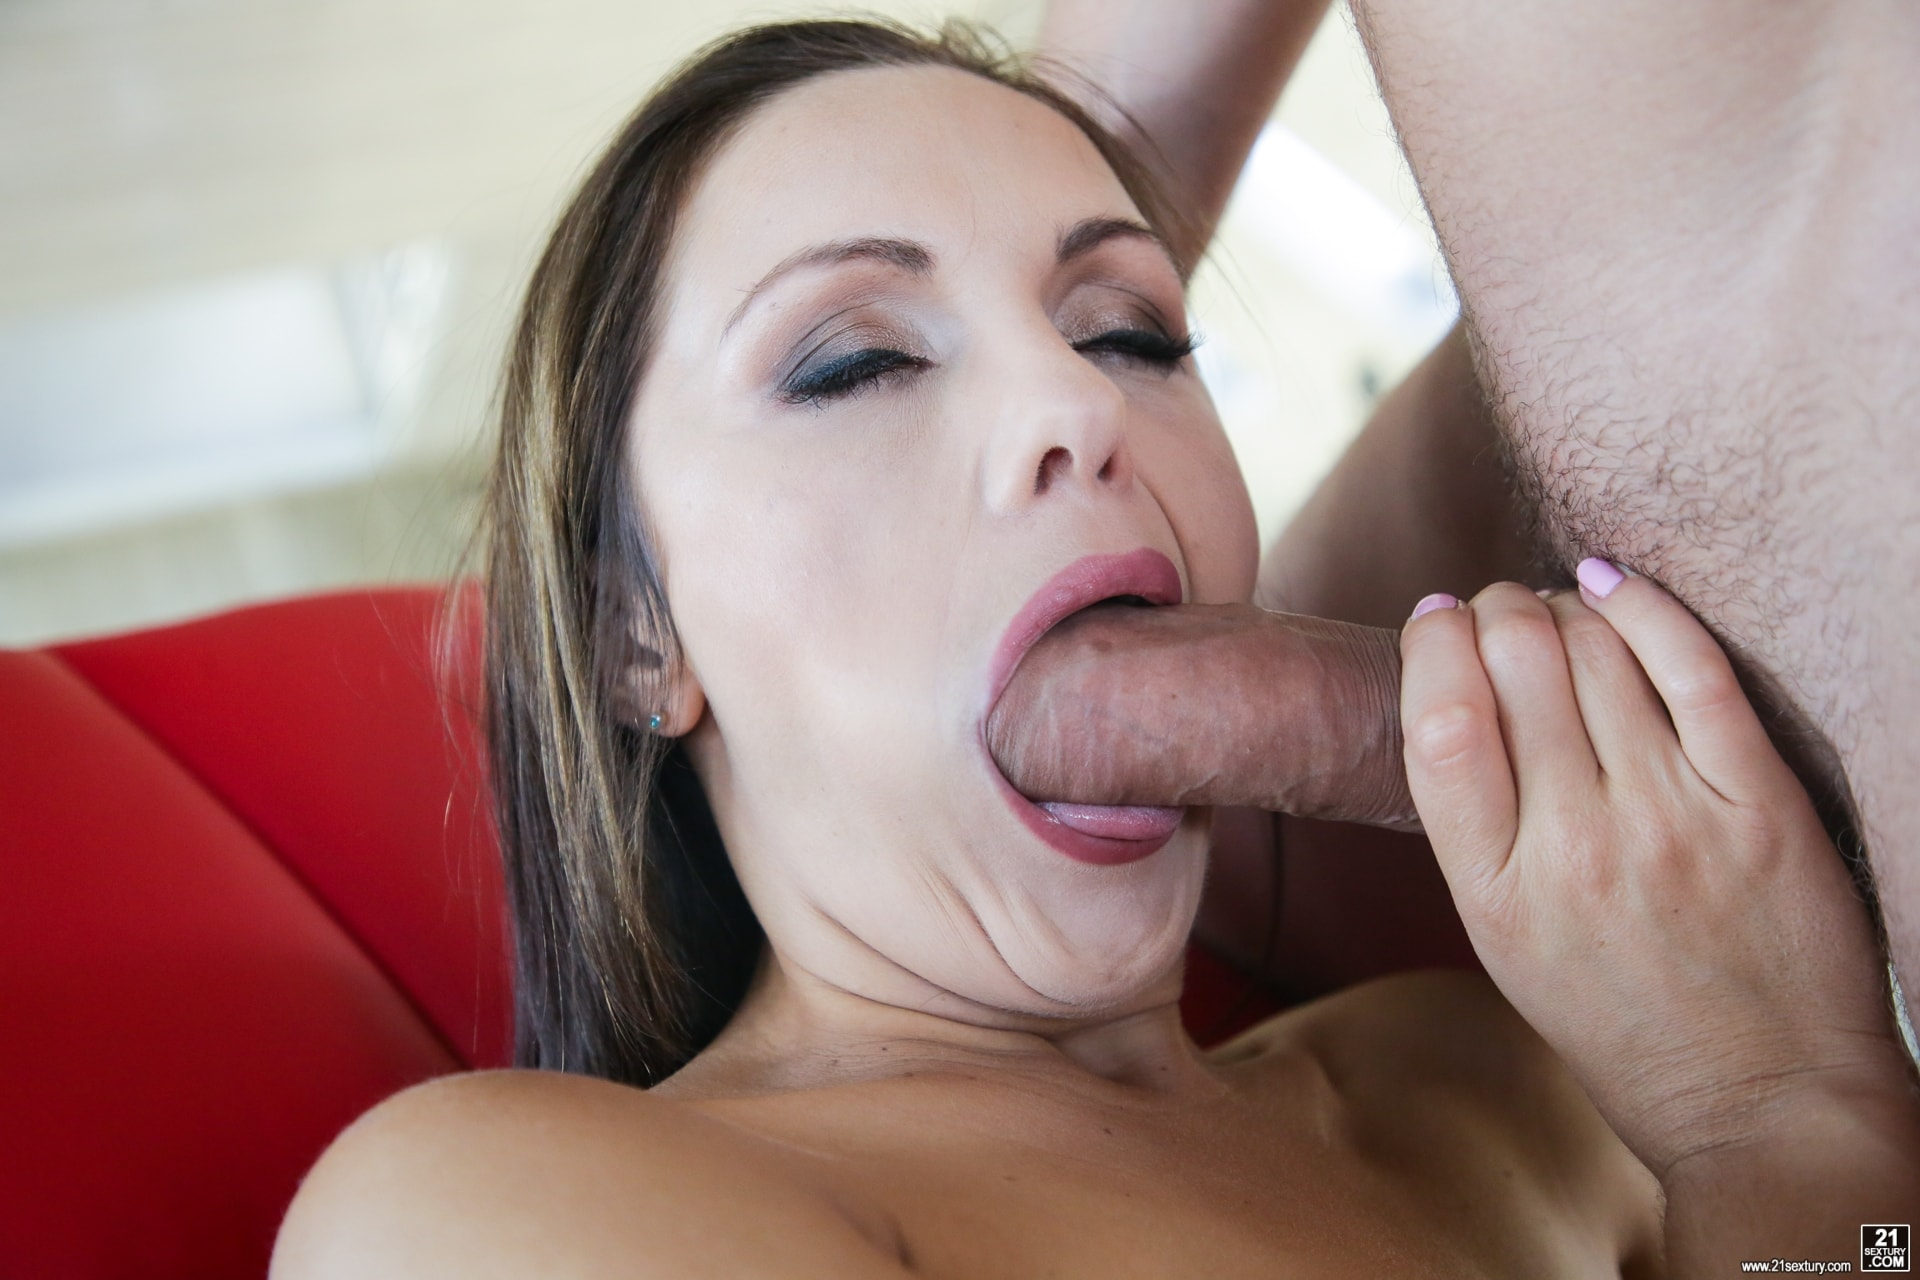 21Sextury 'No One Butt You' starring Dominica Fox (Photo 40)